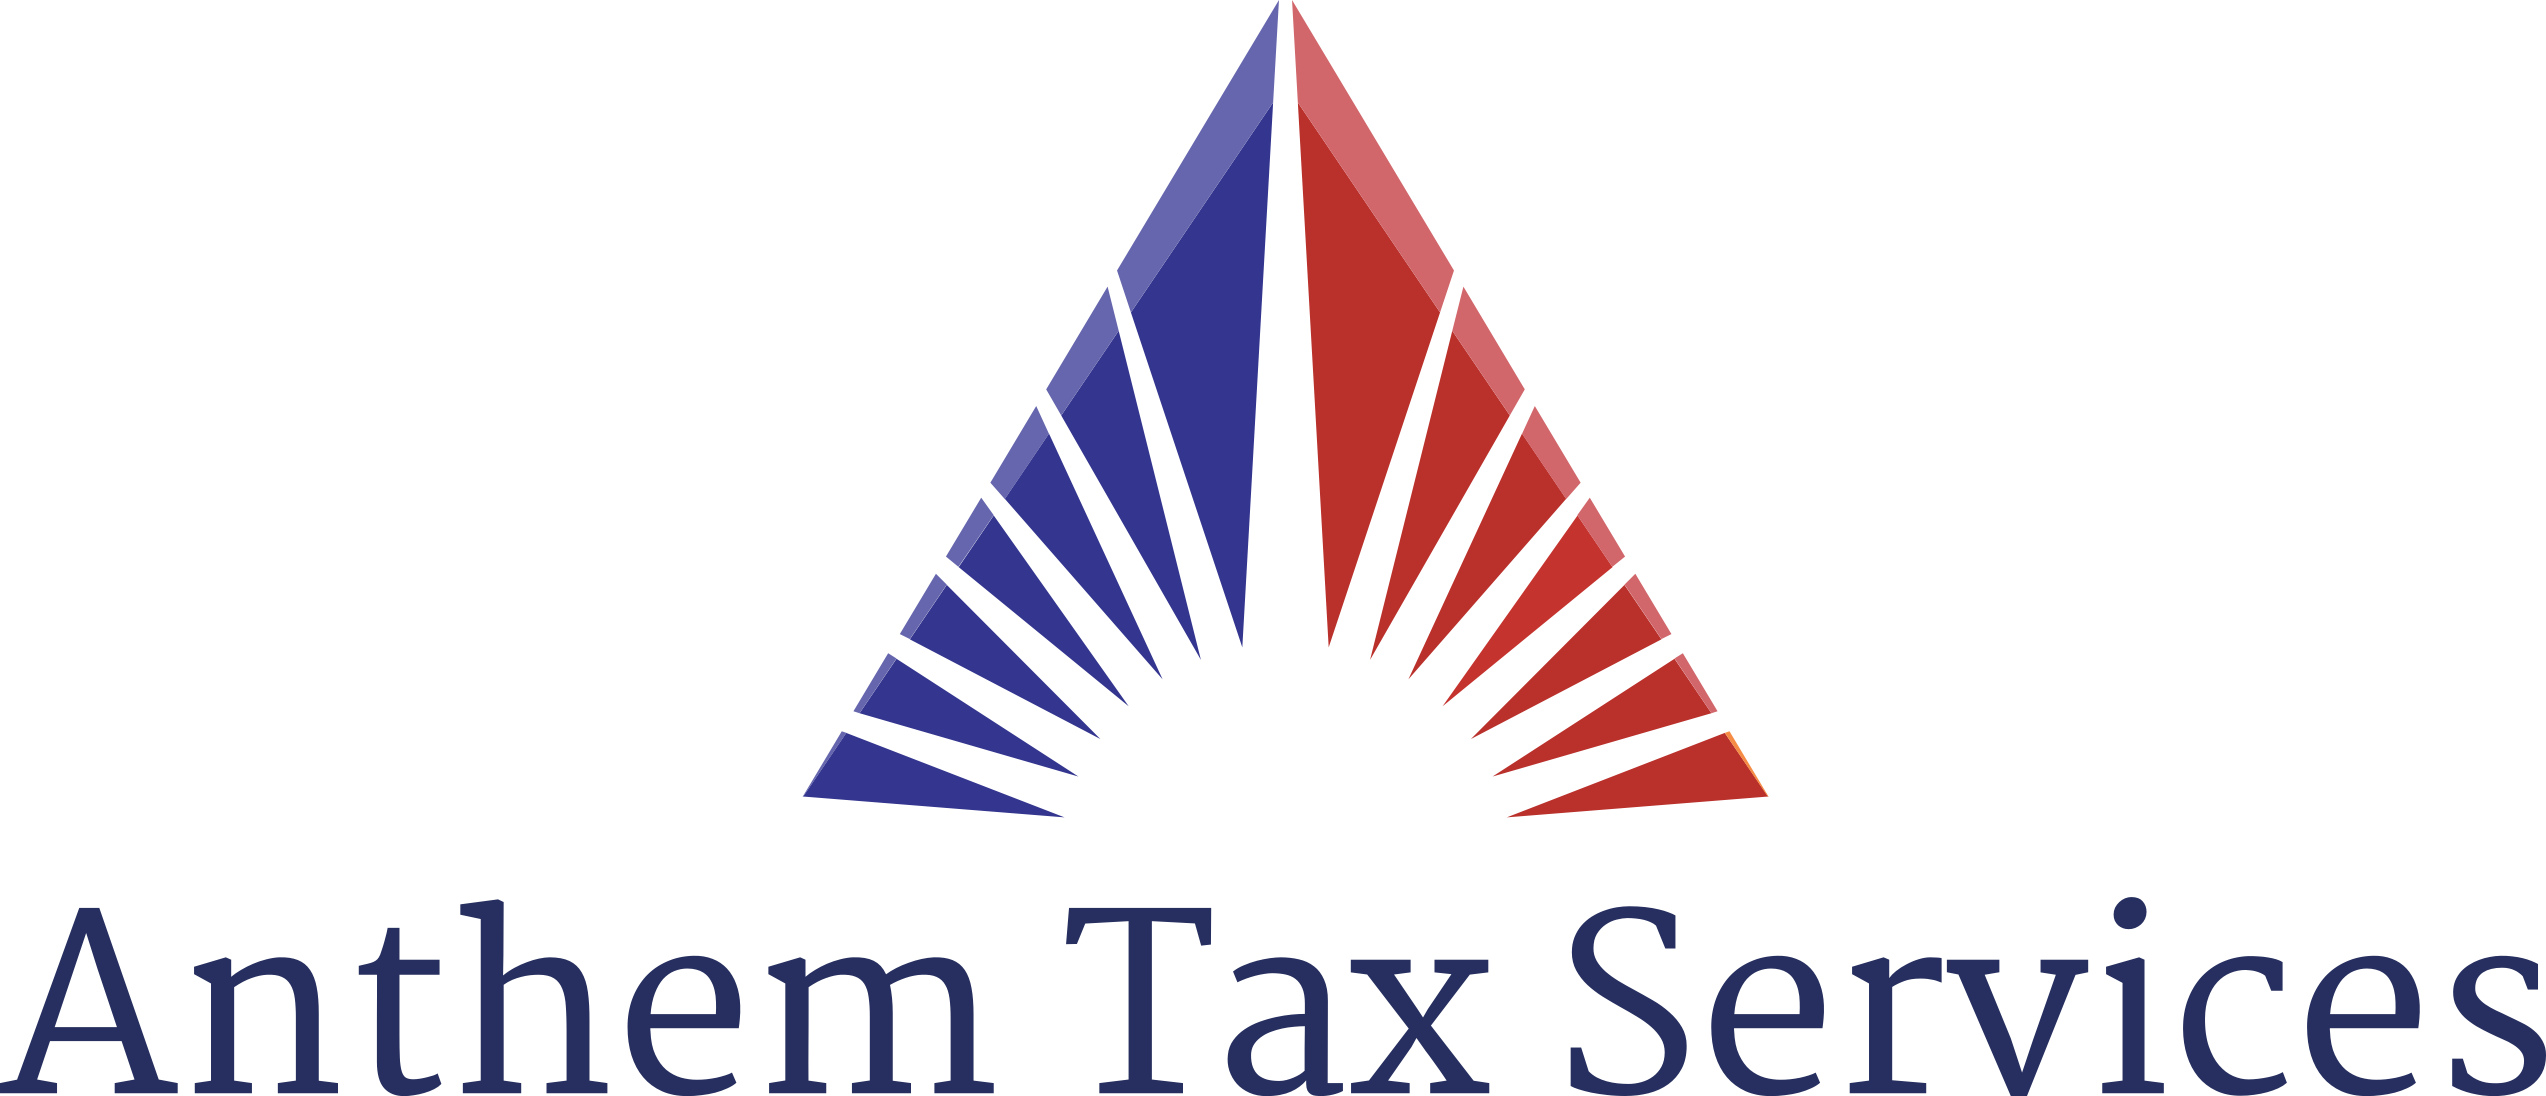 anthem tax services clear background